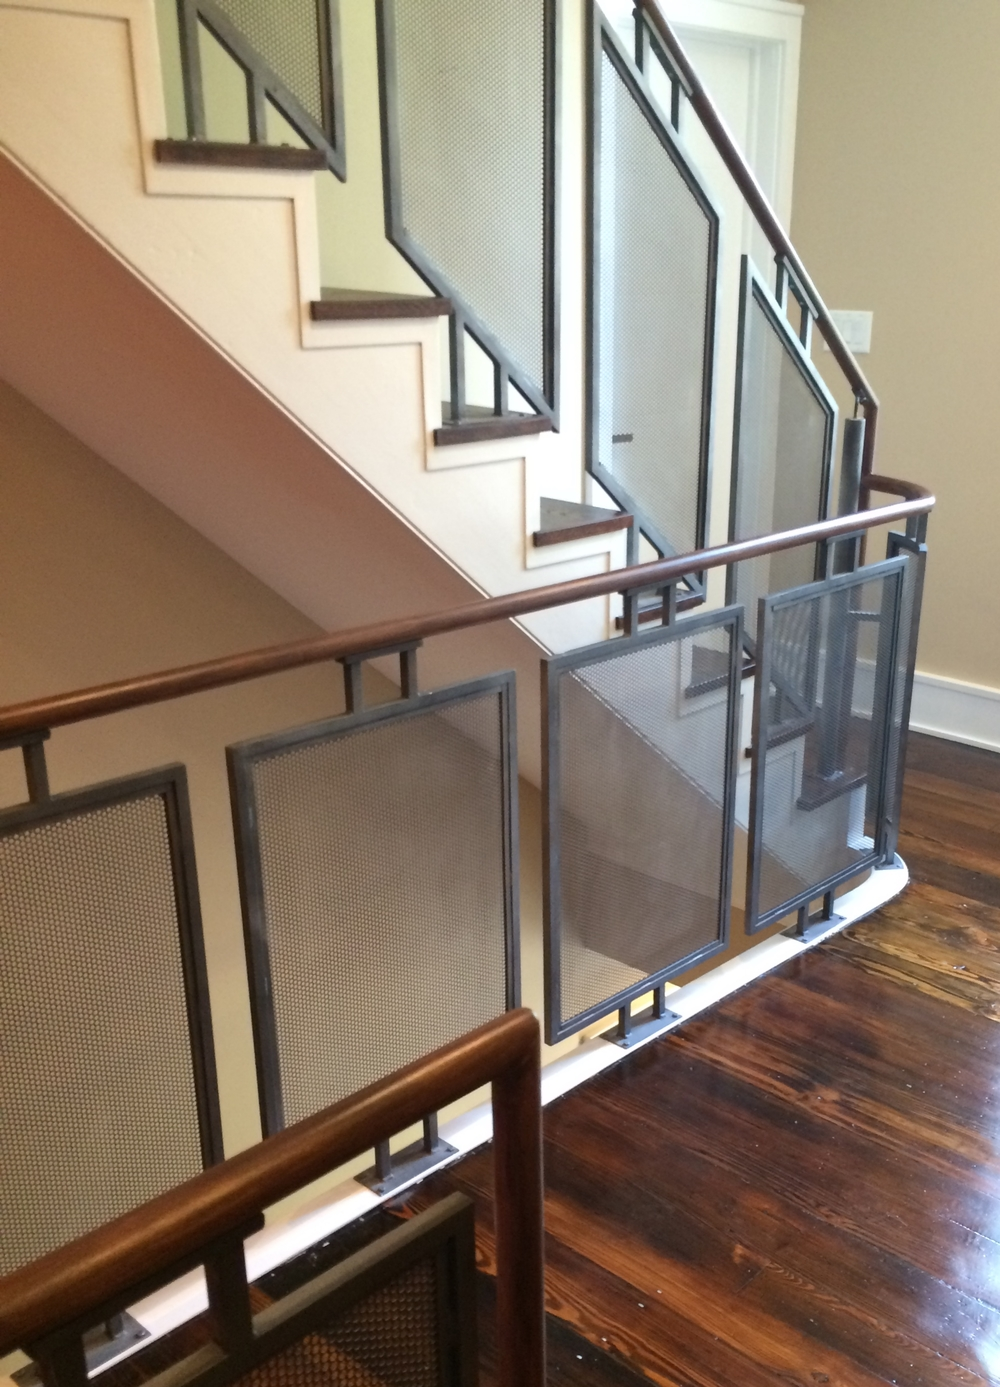 Perforated steel railing